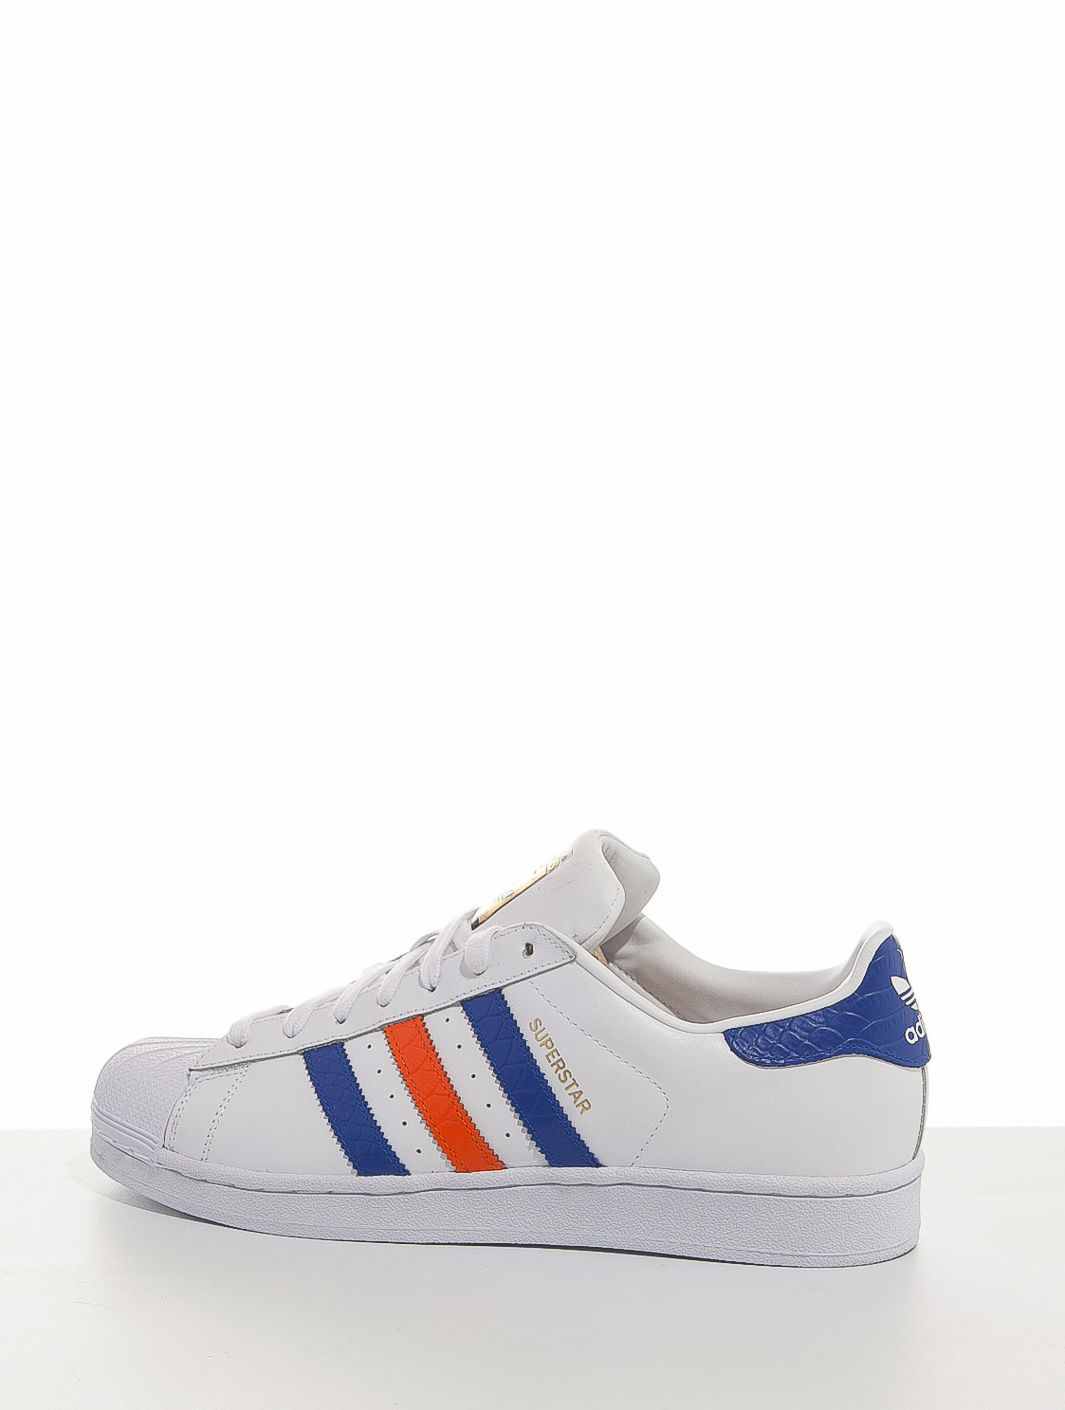 adidas superstar hommes original